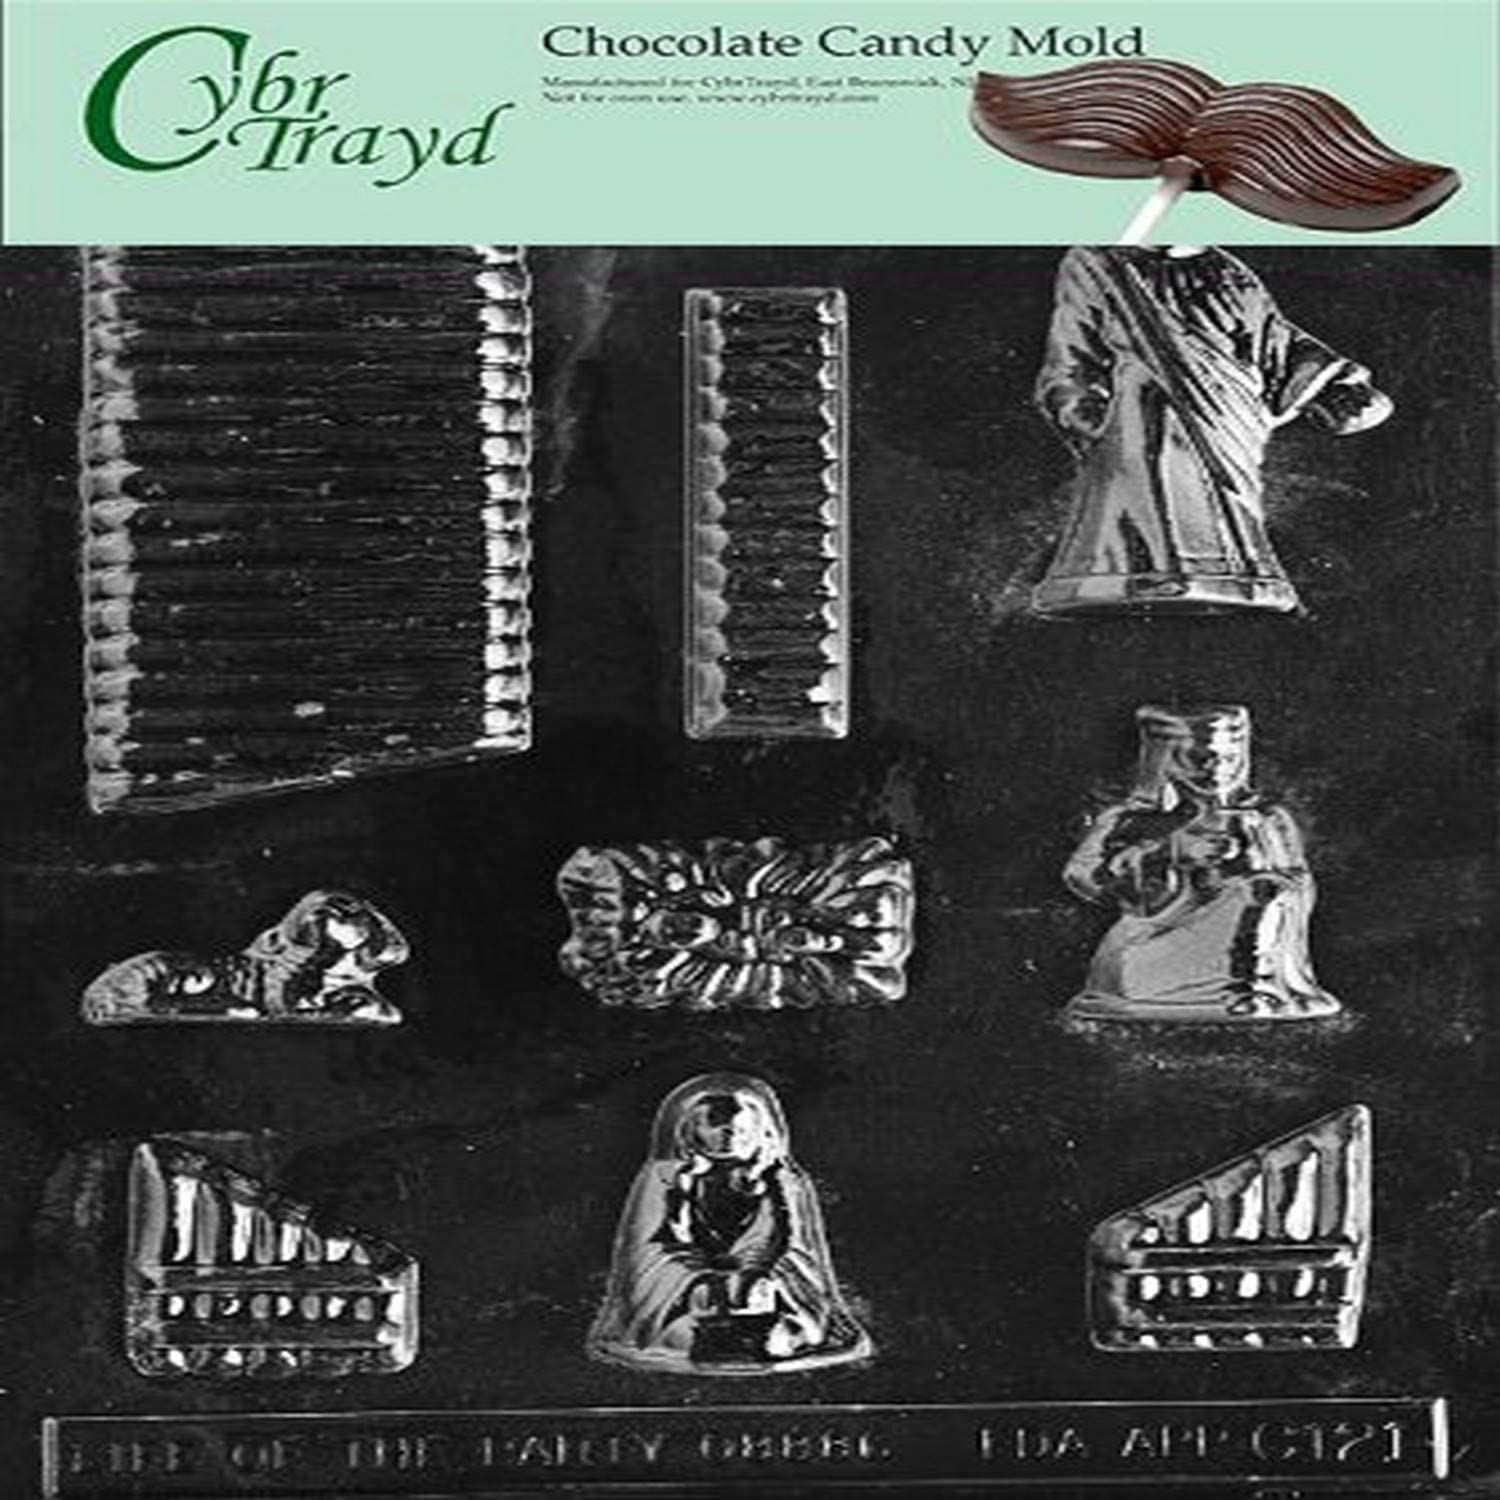 NATIVITY SCENE OFFicial chocolate candy Sale mold